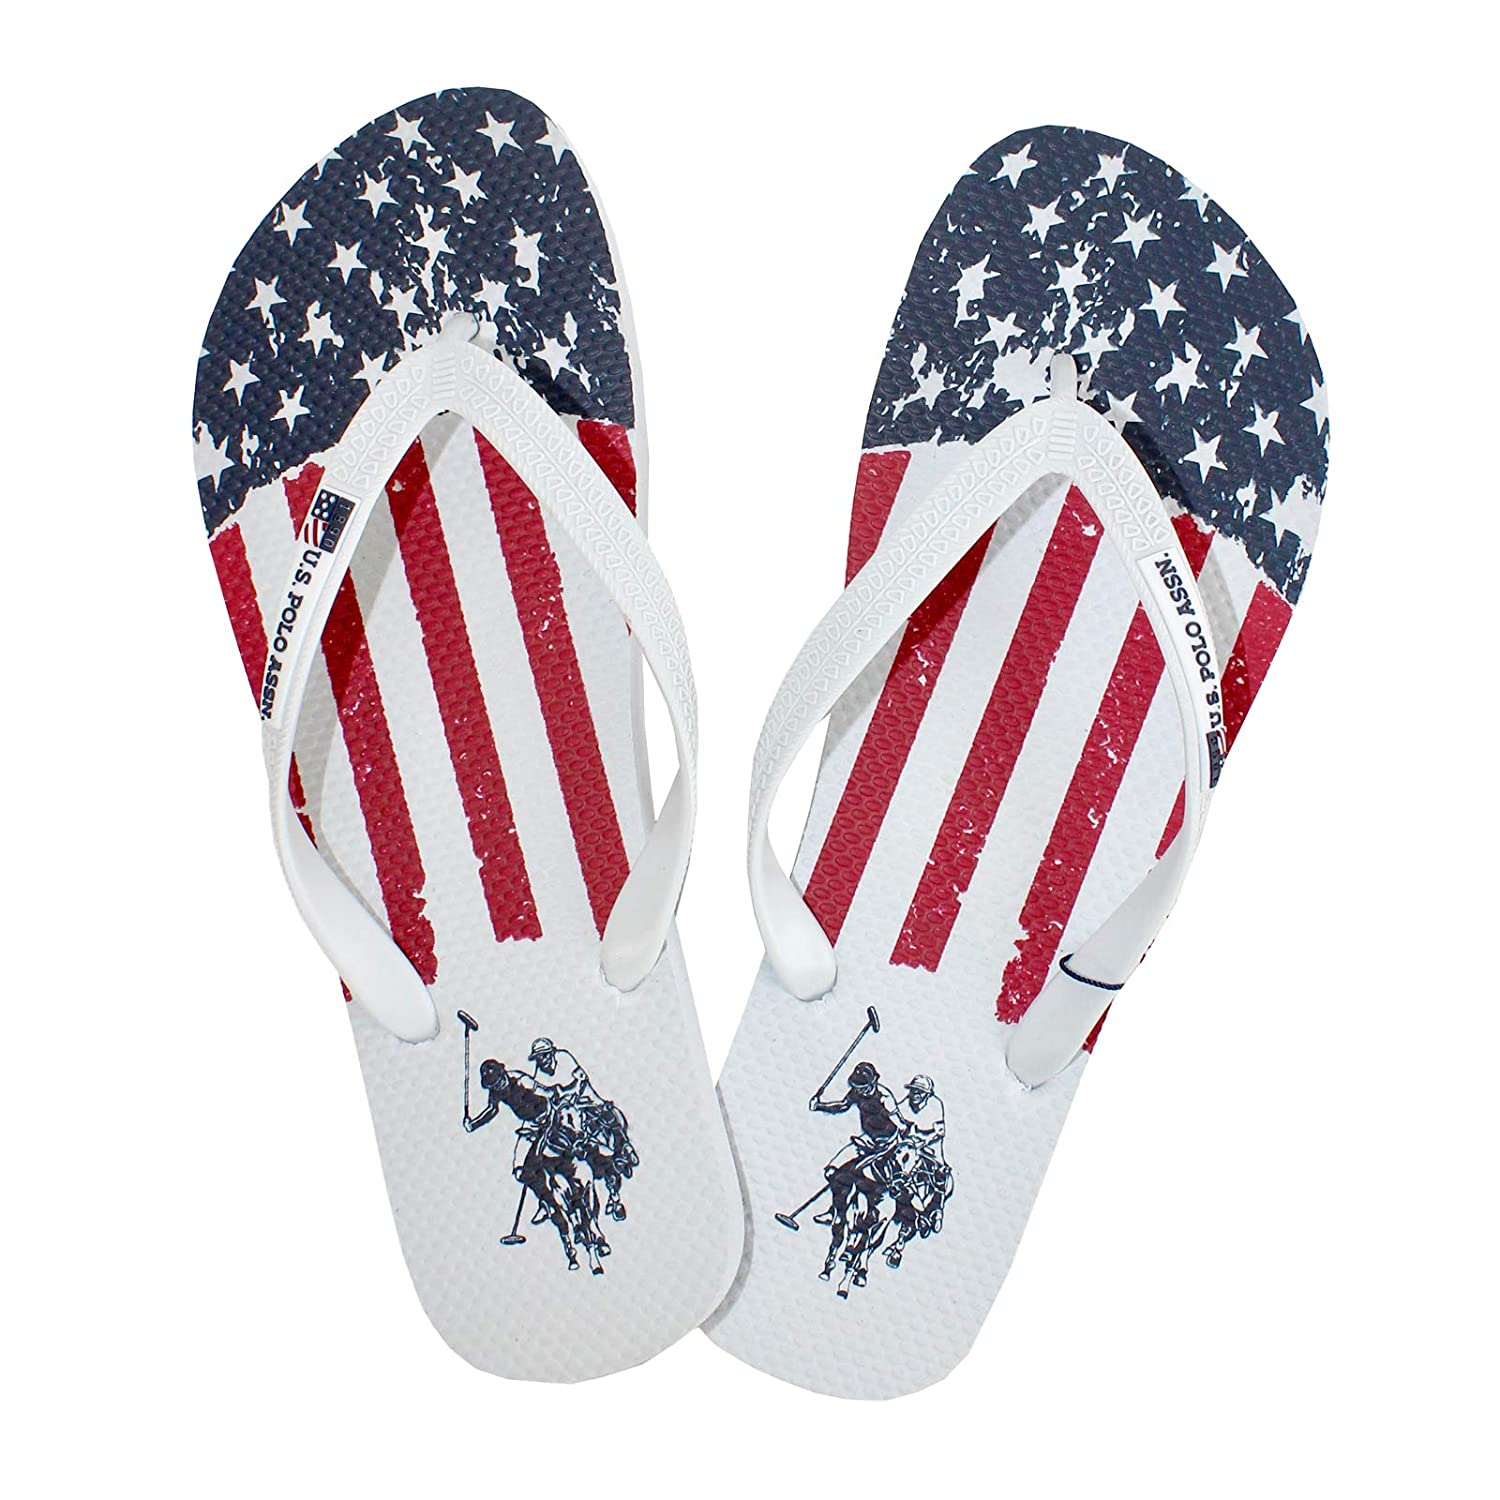 Chanclas Playa Hombre Rick U.S. Polo Assn Blanca (41): Amazon.es ...